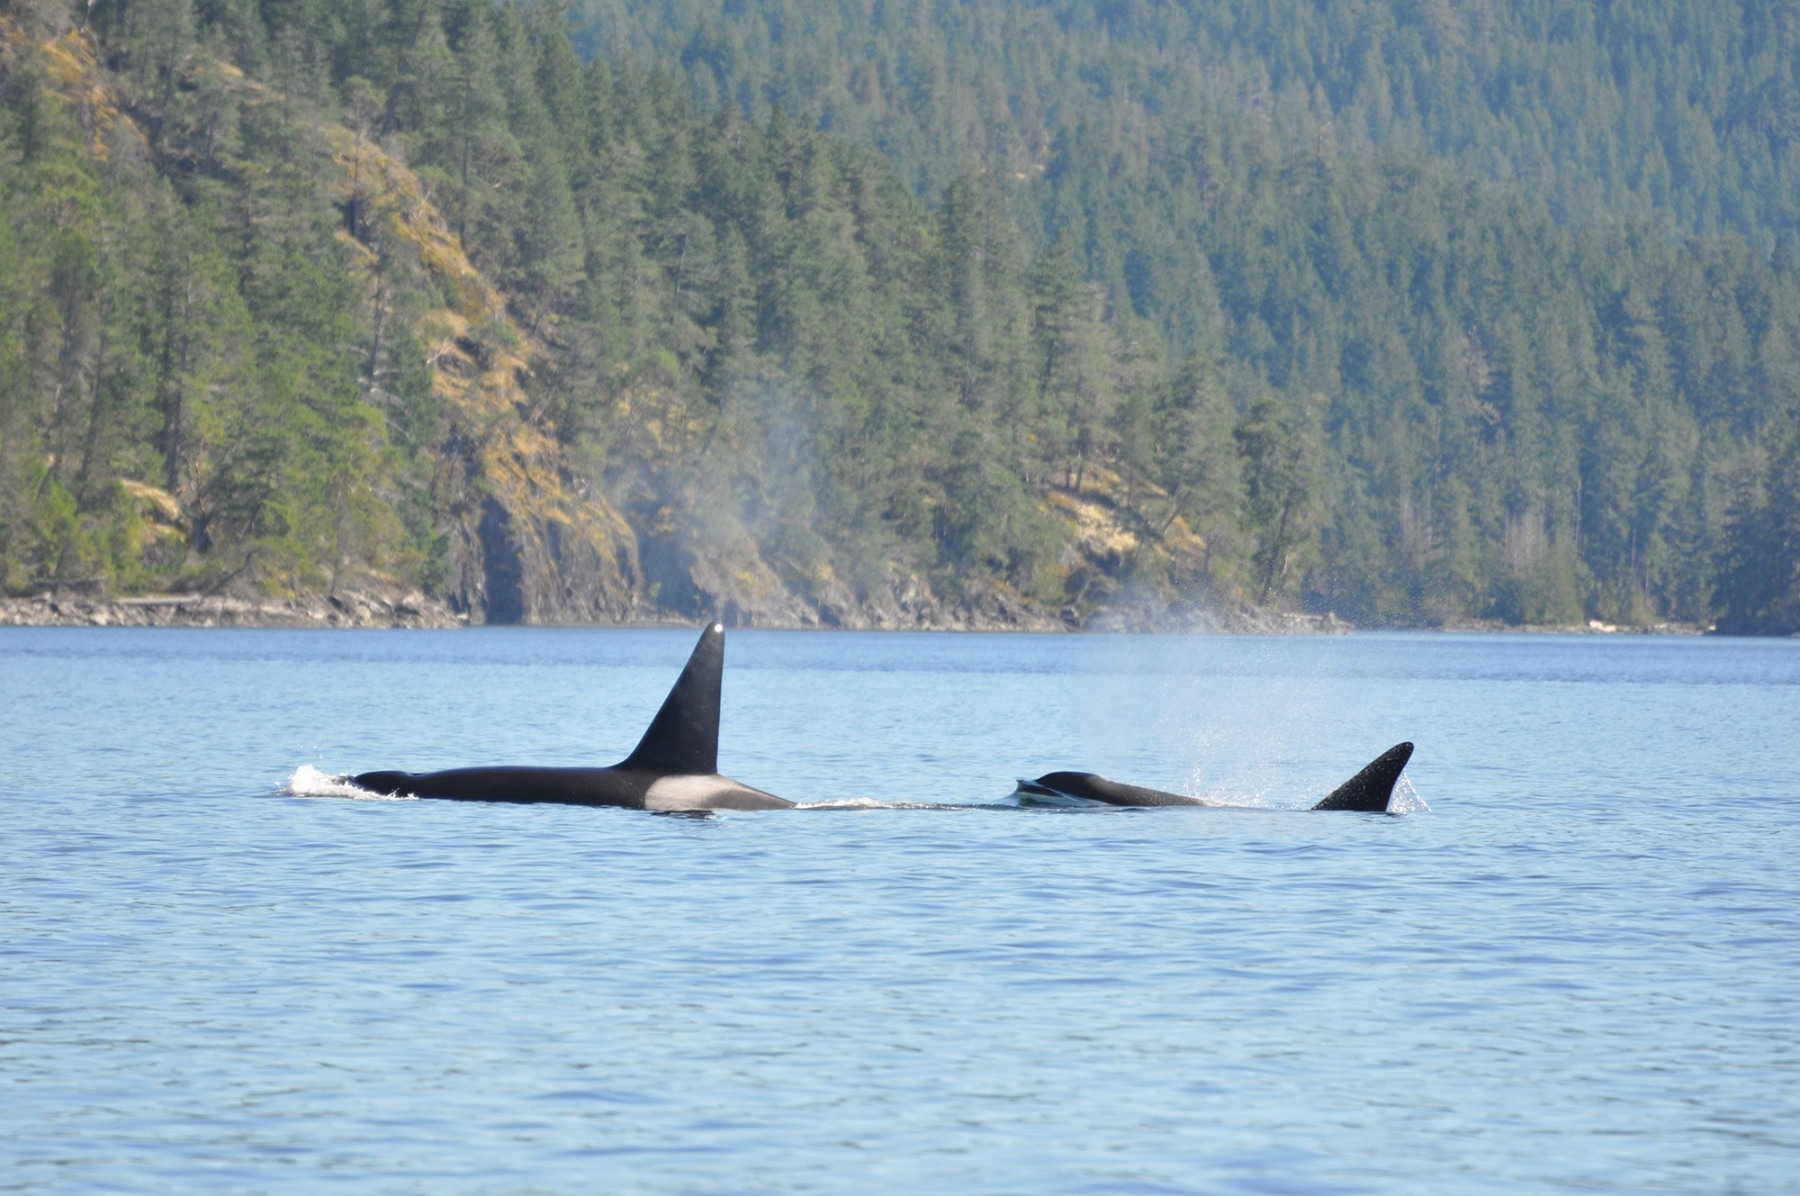 Orcas-off-Penn-Islands-Aug-31-2013-3.jpg